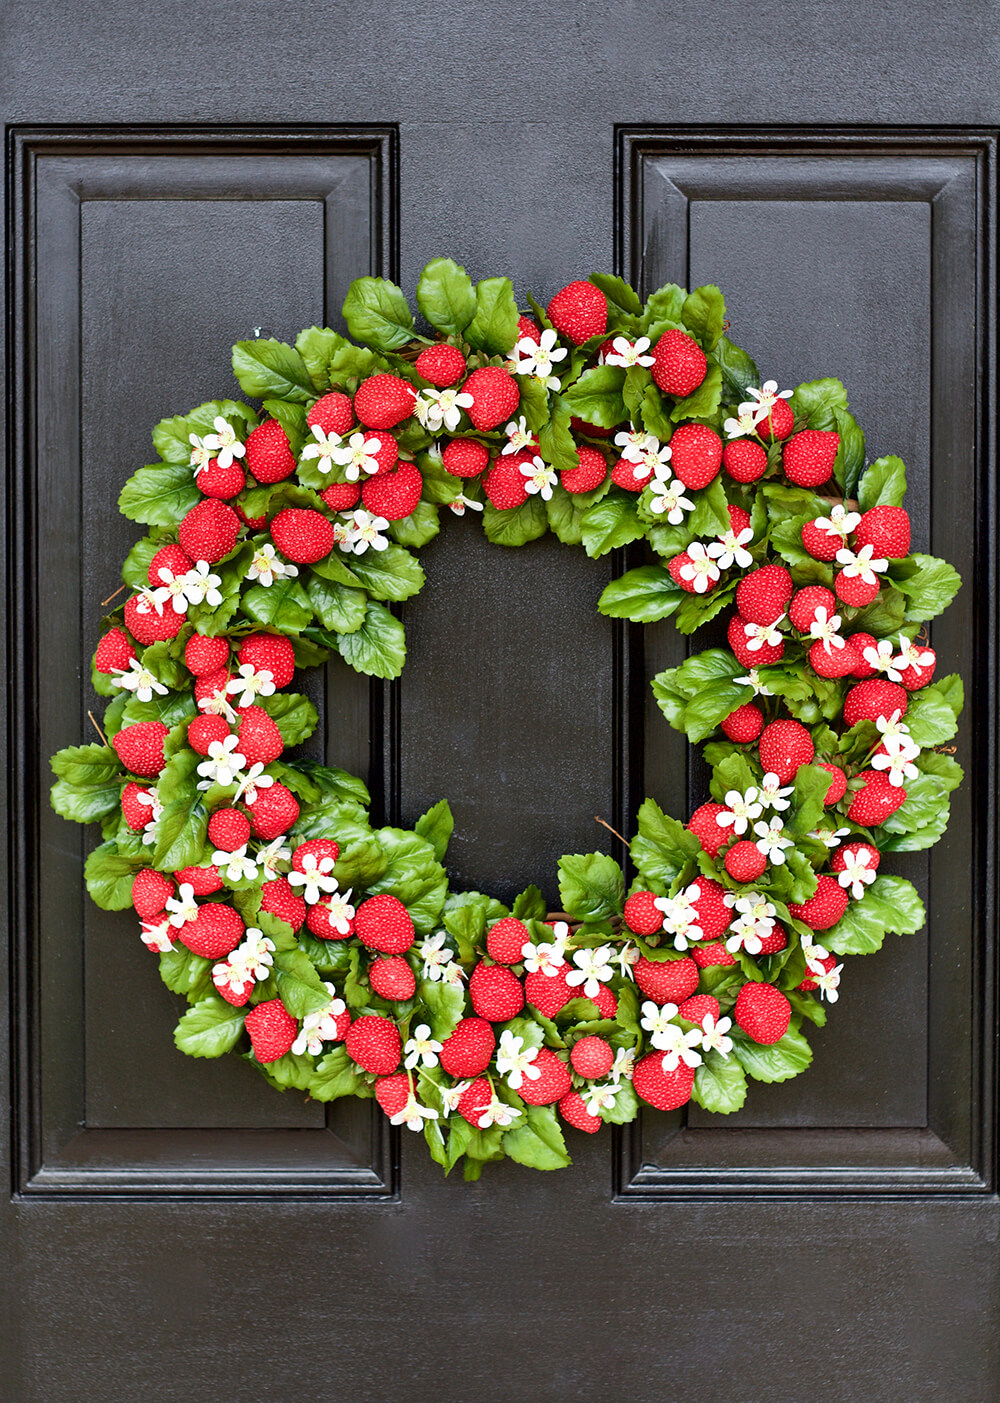 Strawberries and Blossoms on a Wreath